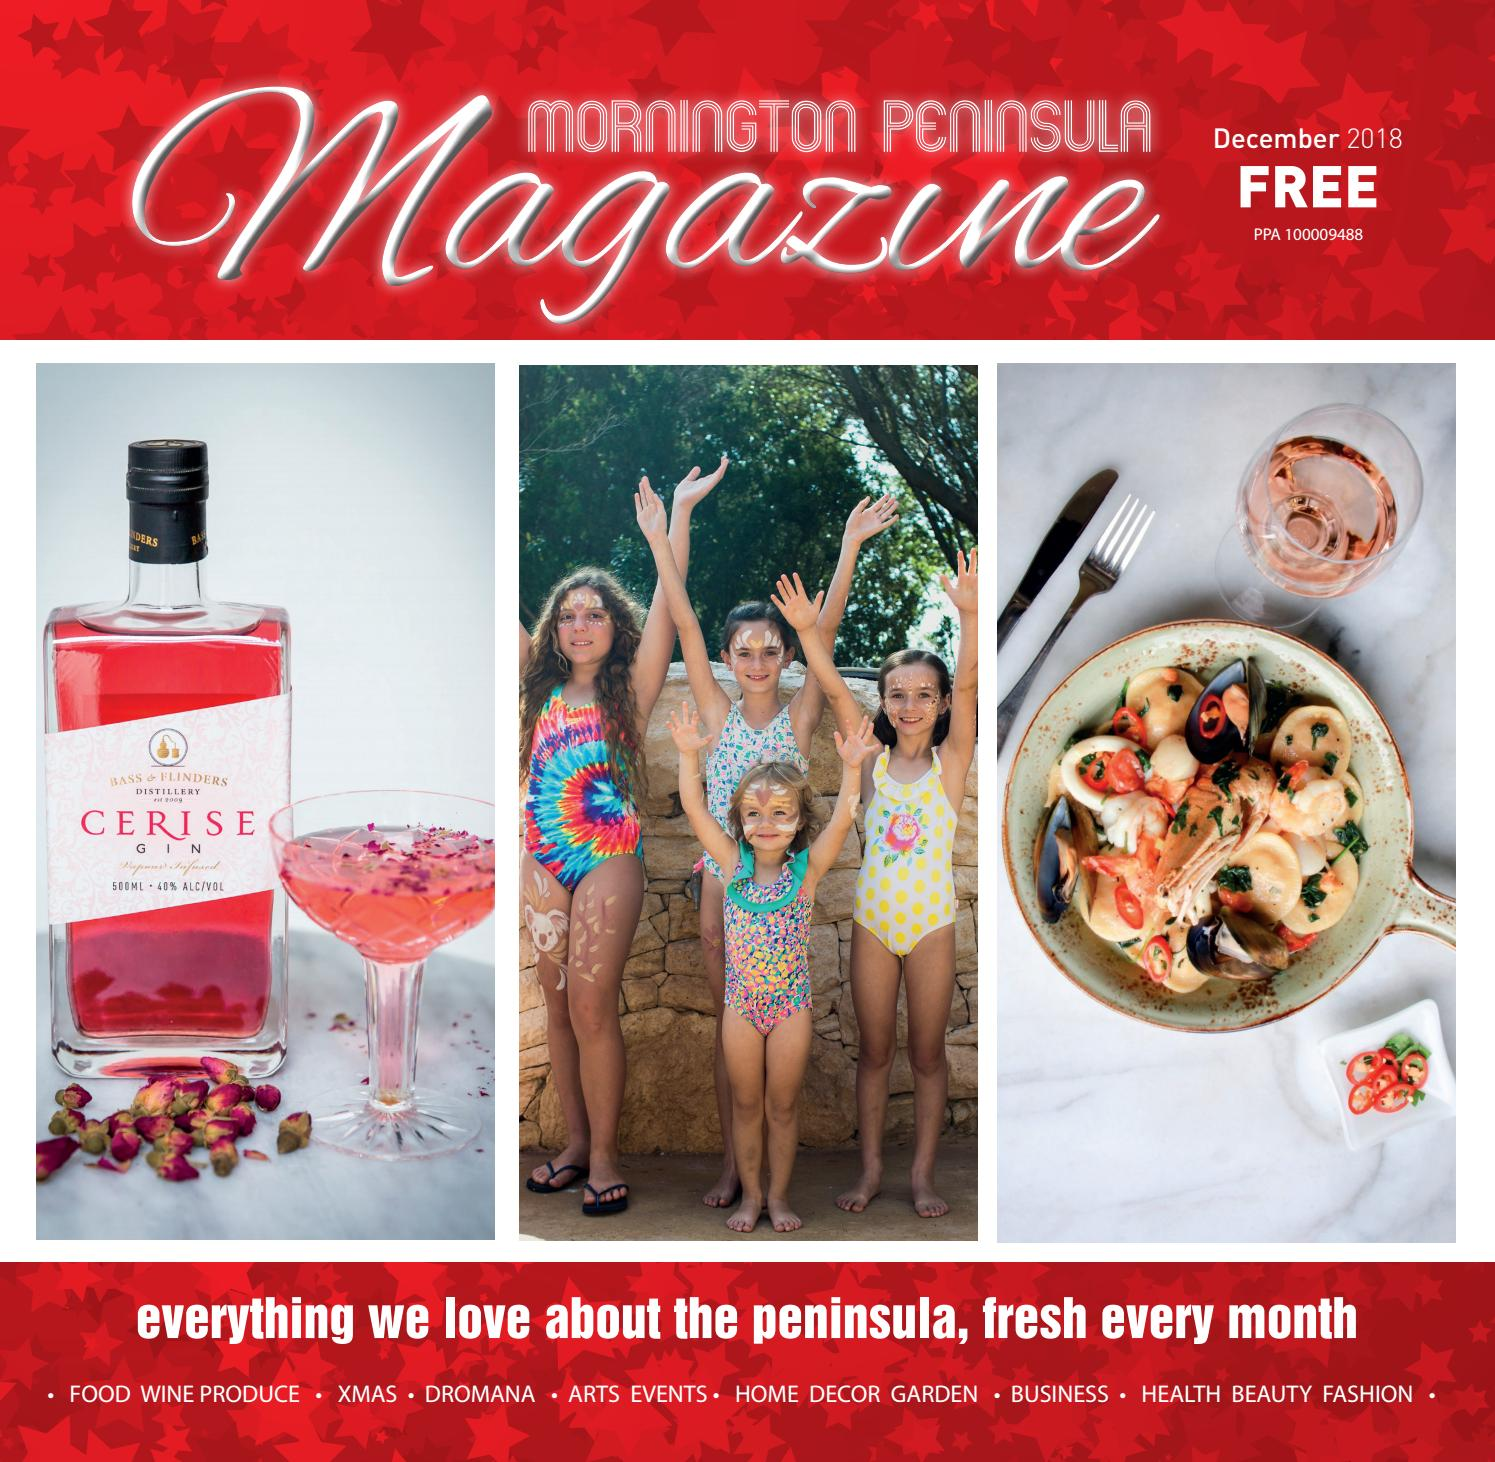 mornington peninsula magazine december 2018 by mornington peninsula rh issuu com